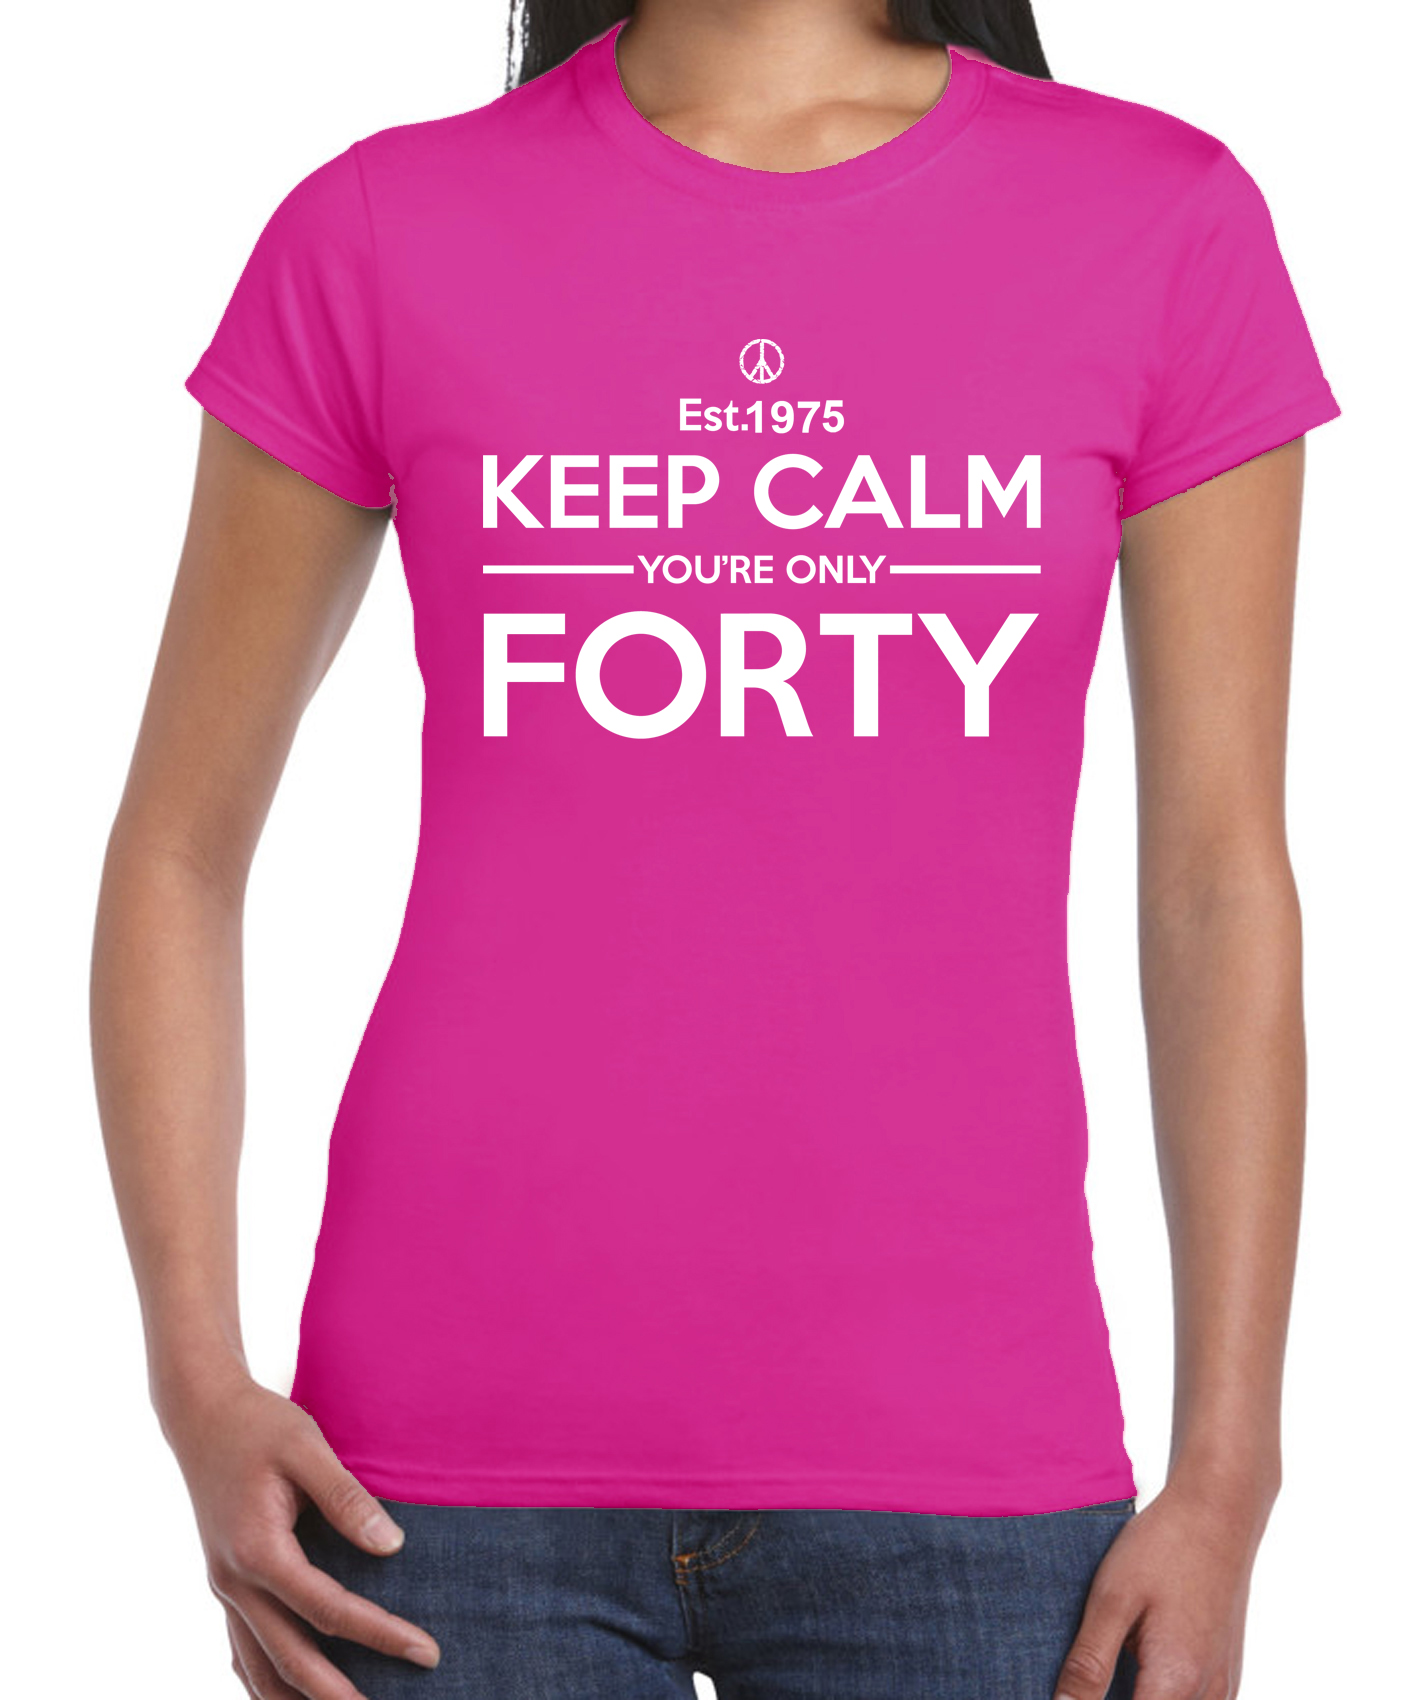 KEEP-CALM-YOUR-ONLY-FORTY-WOMENS-T-SHIRT-40th-Birthday-Present-Gift